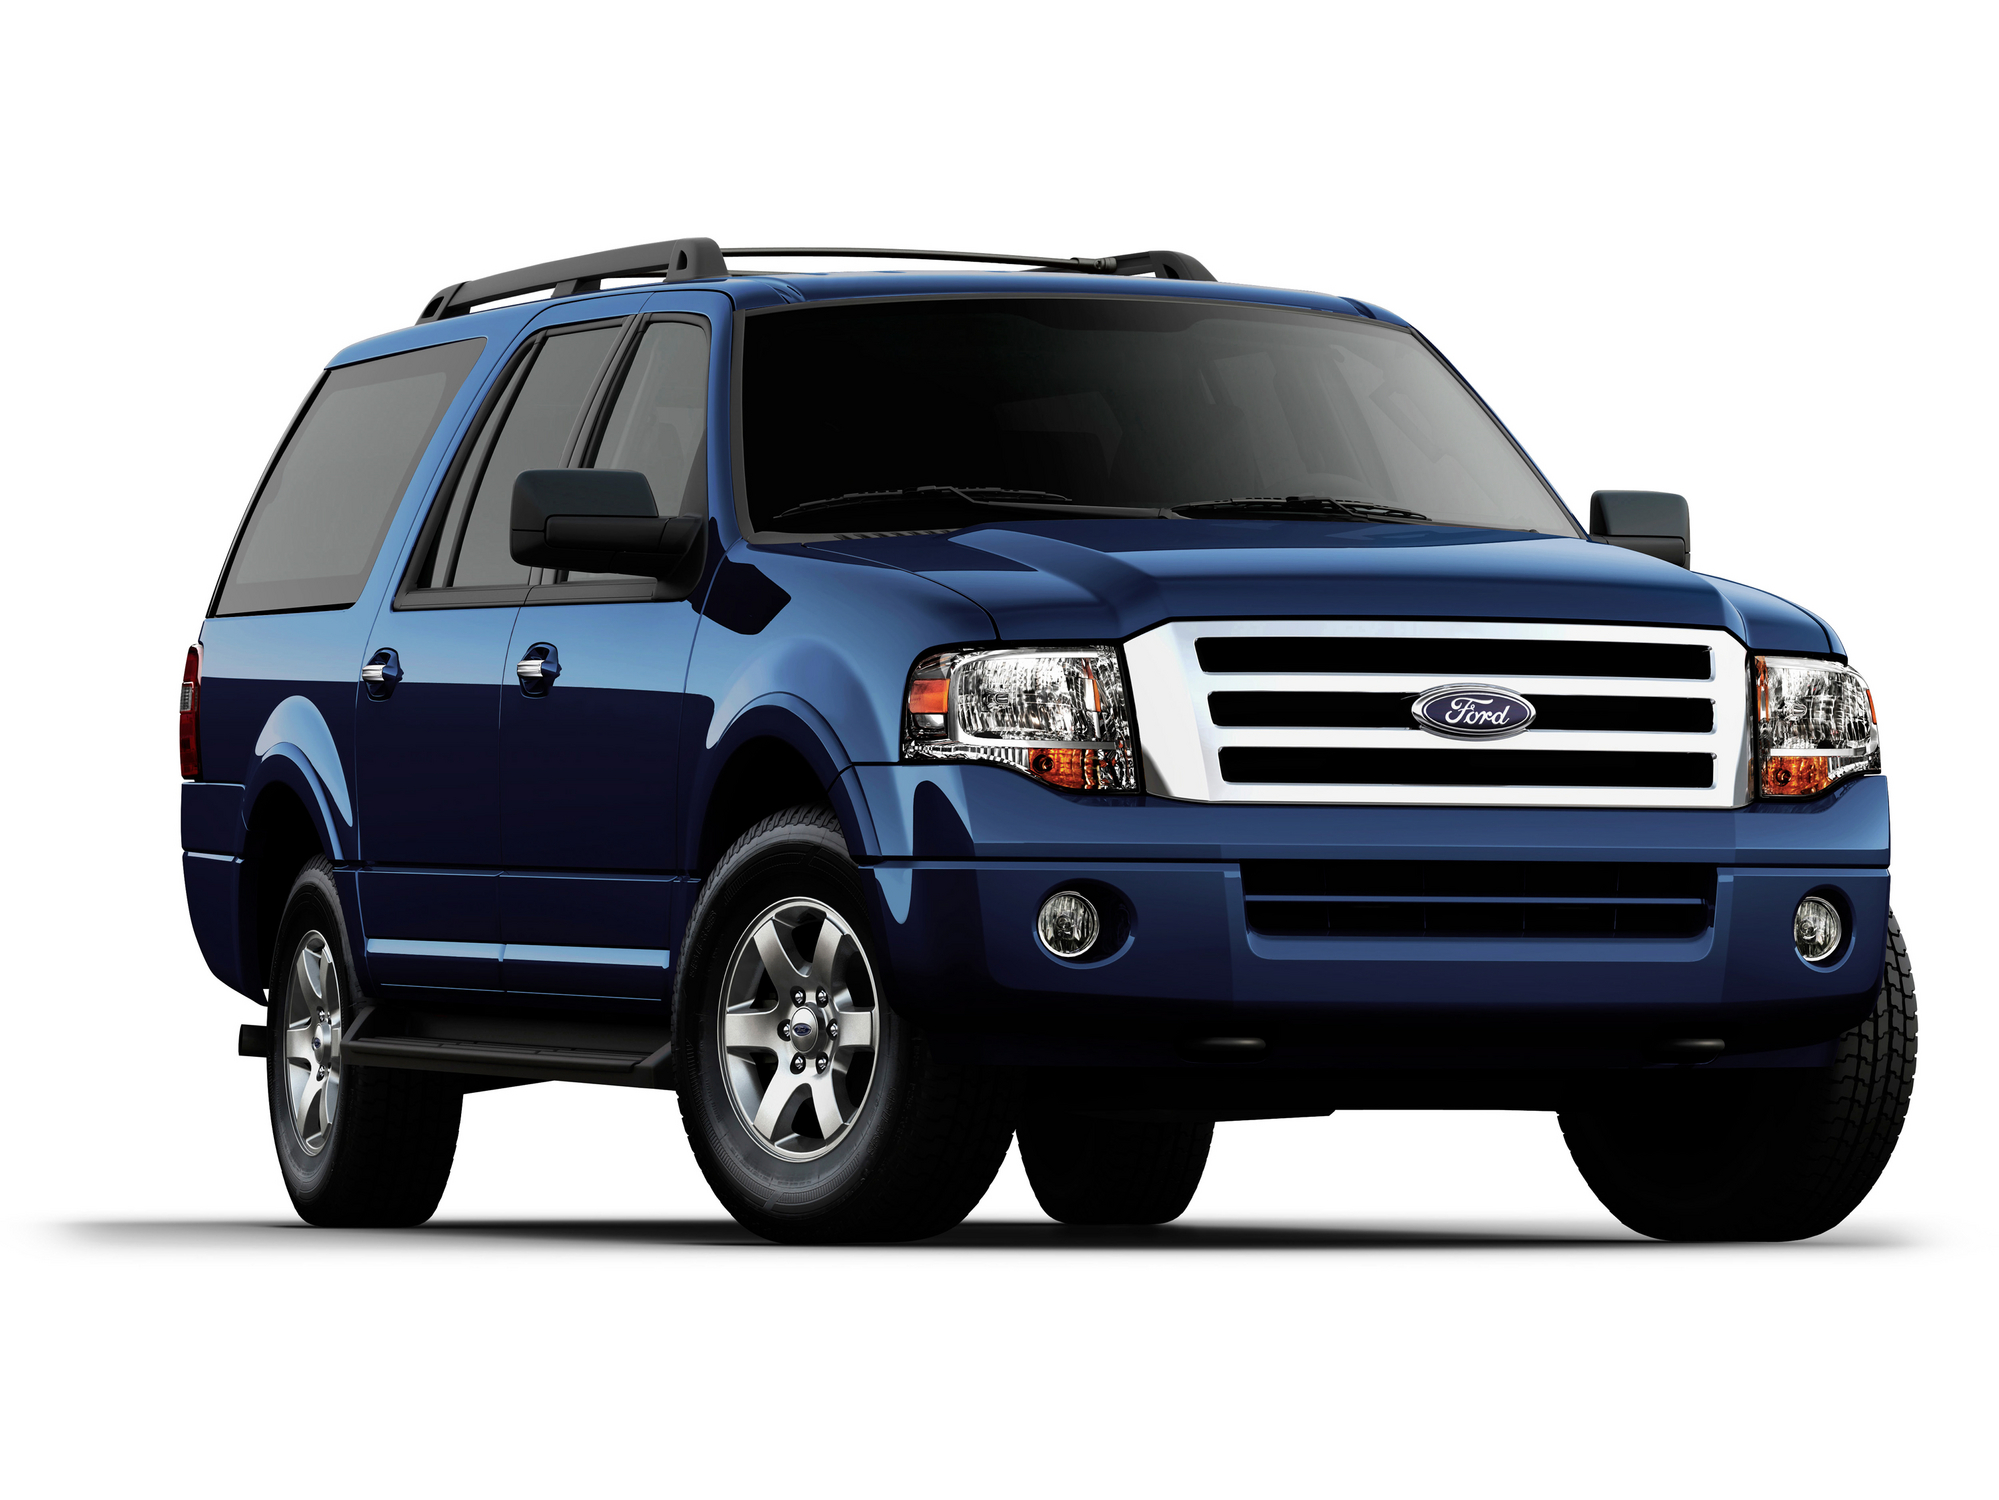 2014 ford expedition 4x4 king ranch for sale autos post. Black Bedroom Furniture Sets. Home Design Ideas